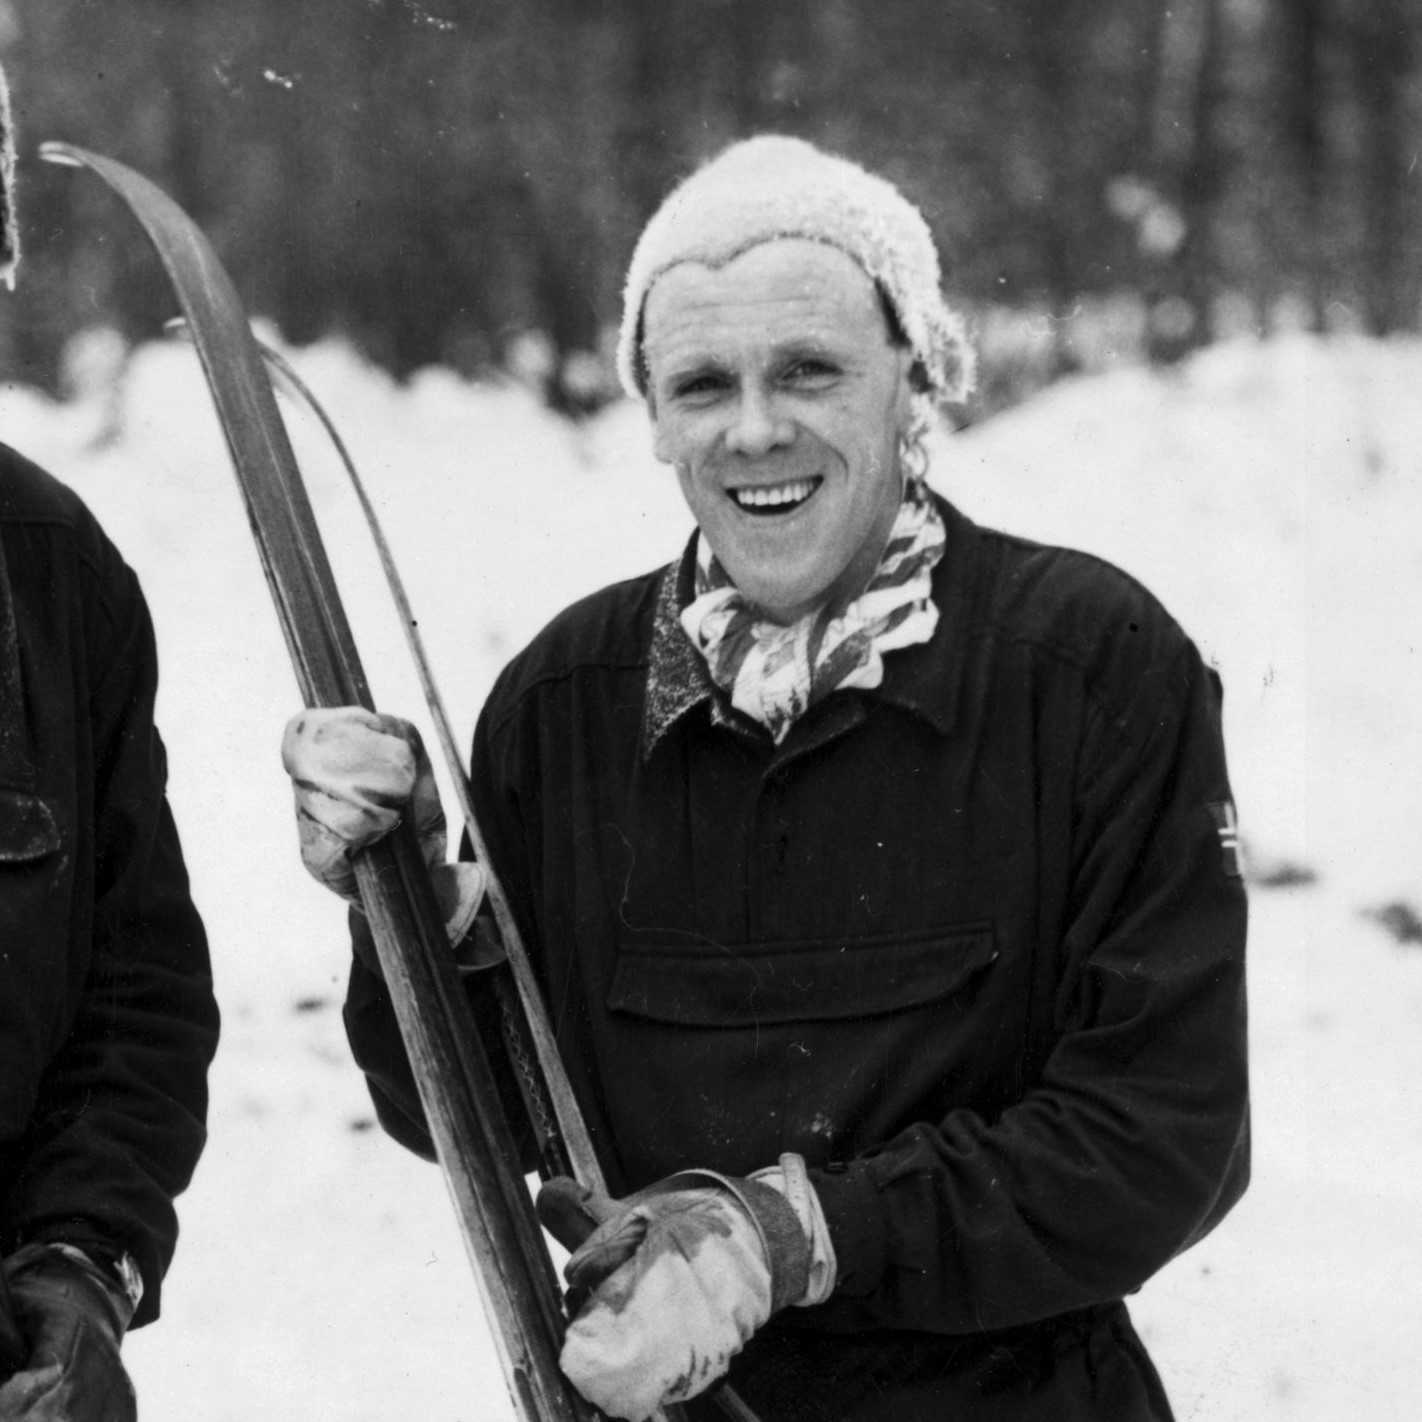 Håkon Brusveen won two medals at the Squaw Valley 1960 Winter Olympics ©Getty Images